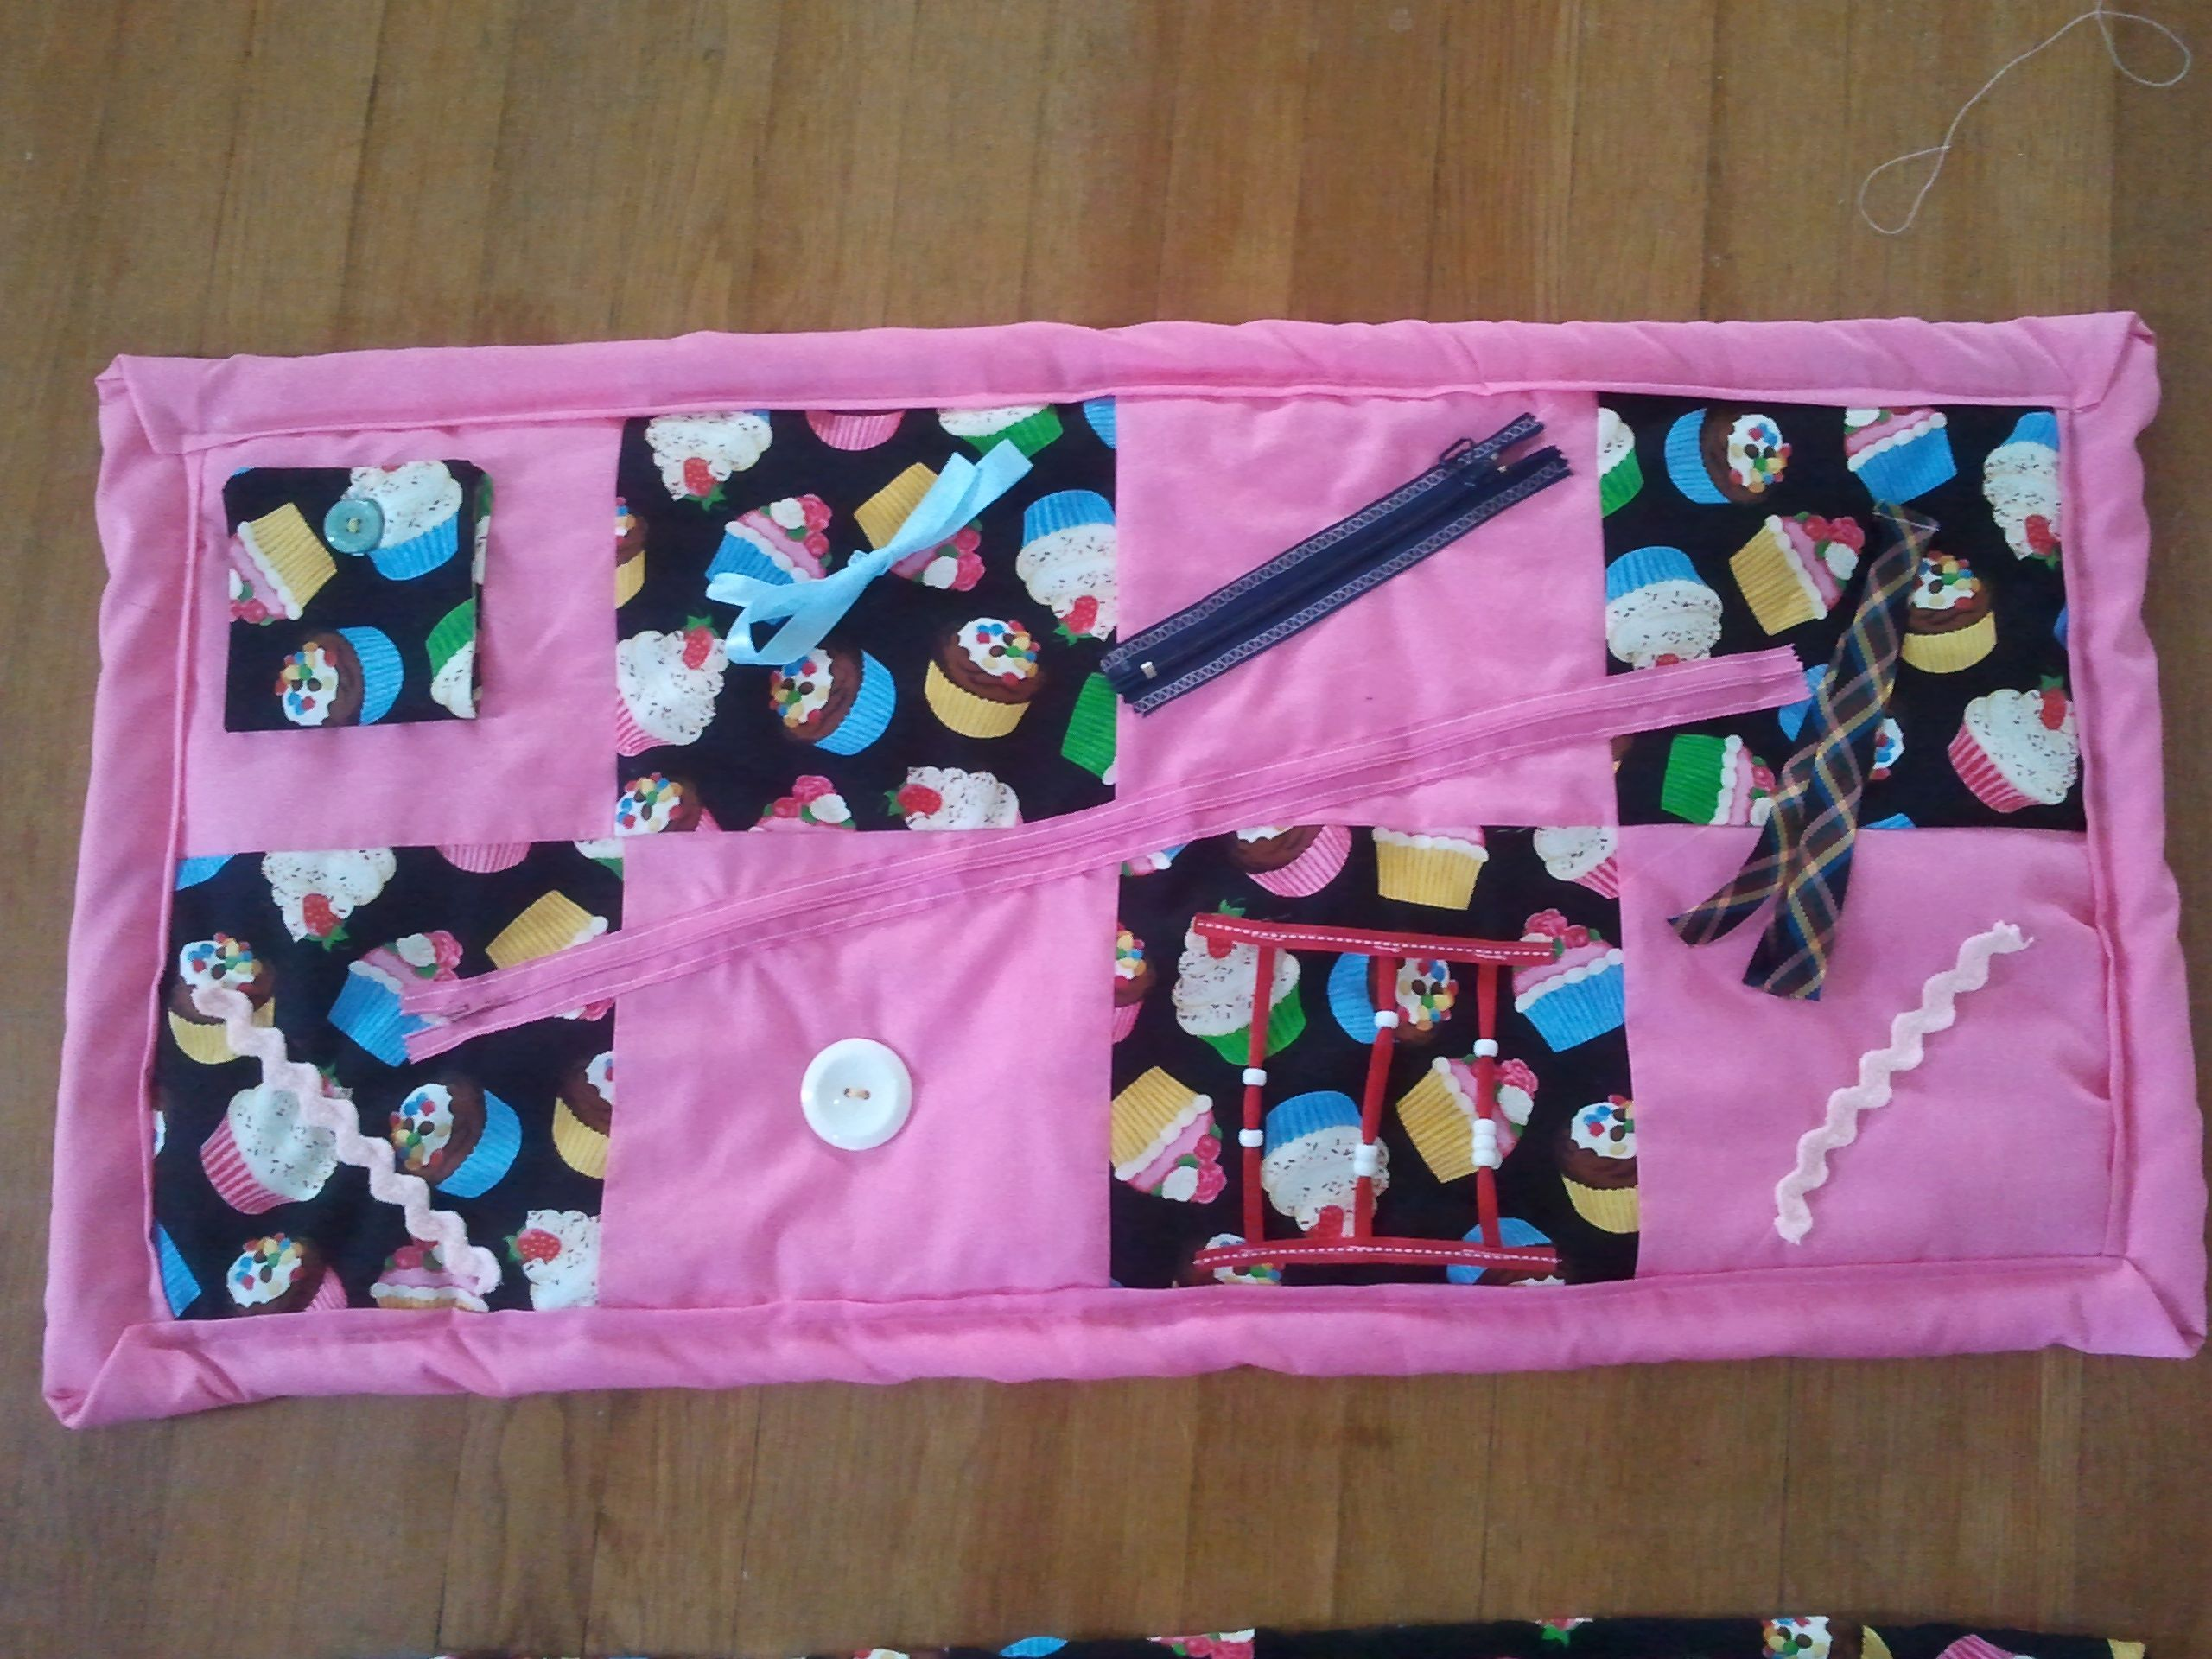 Activity Blanket I Made For Elderly People With Dementia